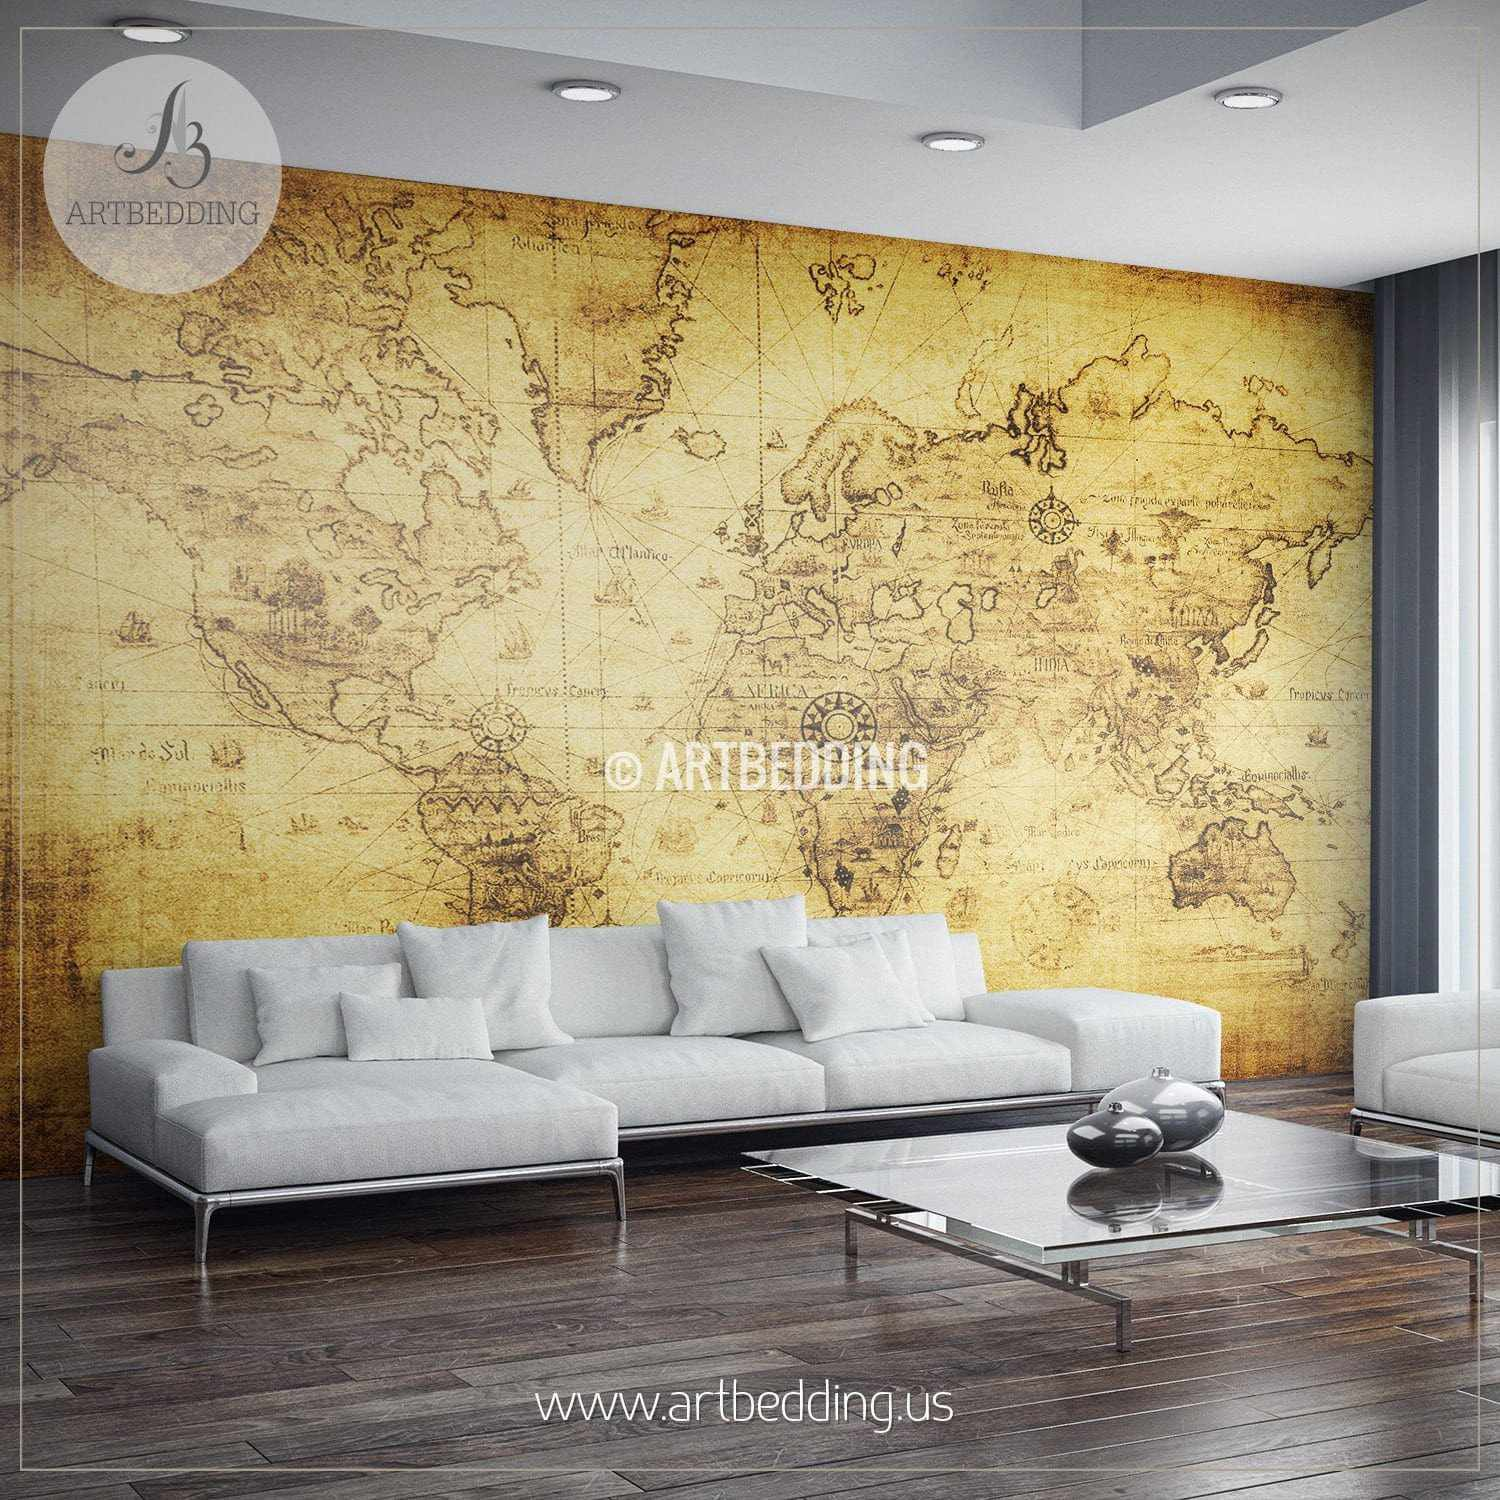 Wall Murals | Wall Tapestries | Canvas Wall Art, Wall Decor - ARTBEDDING